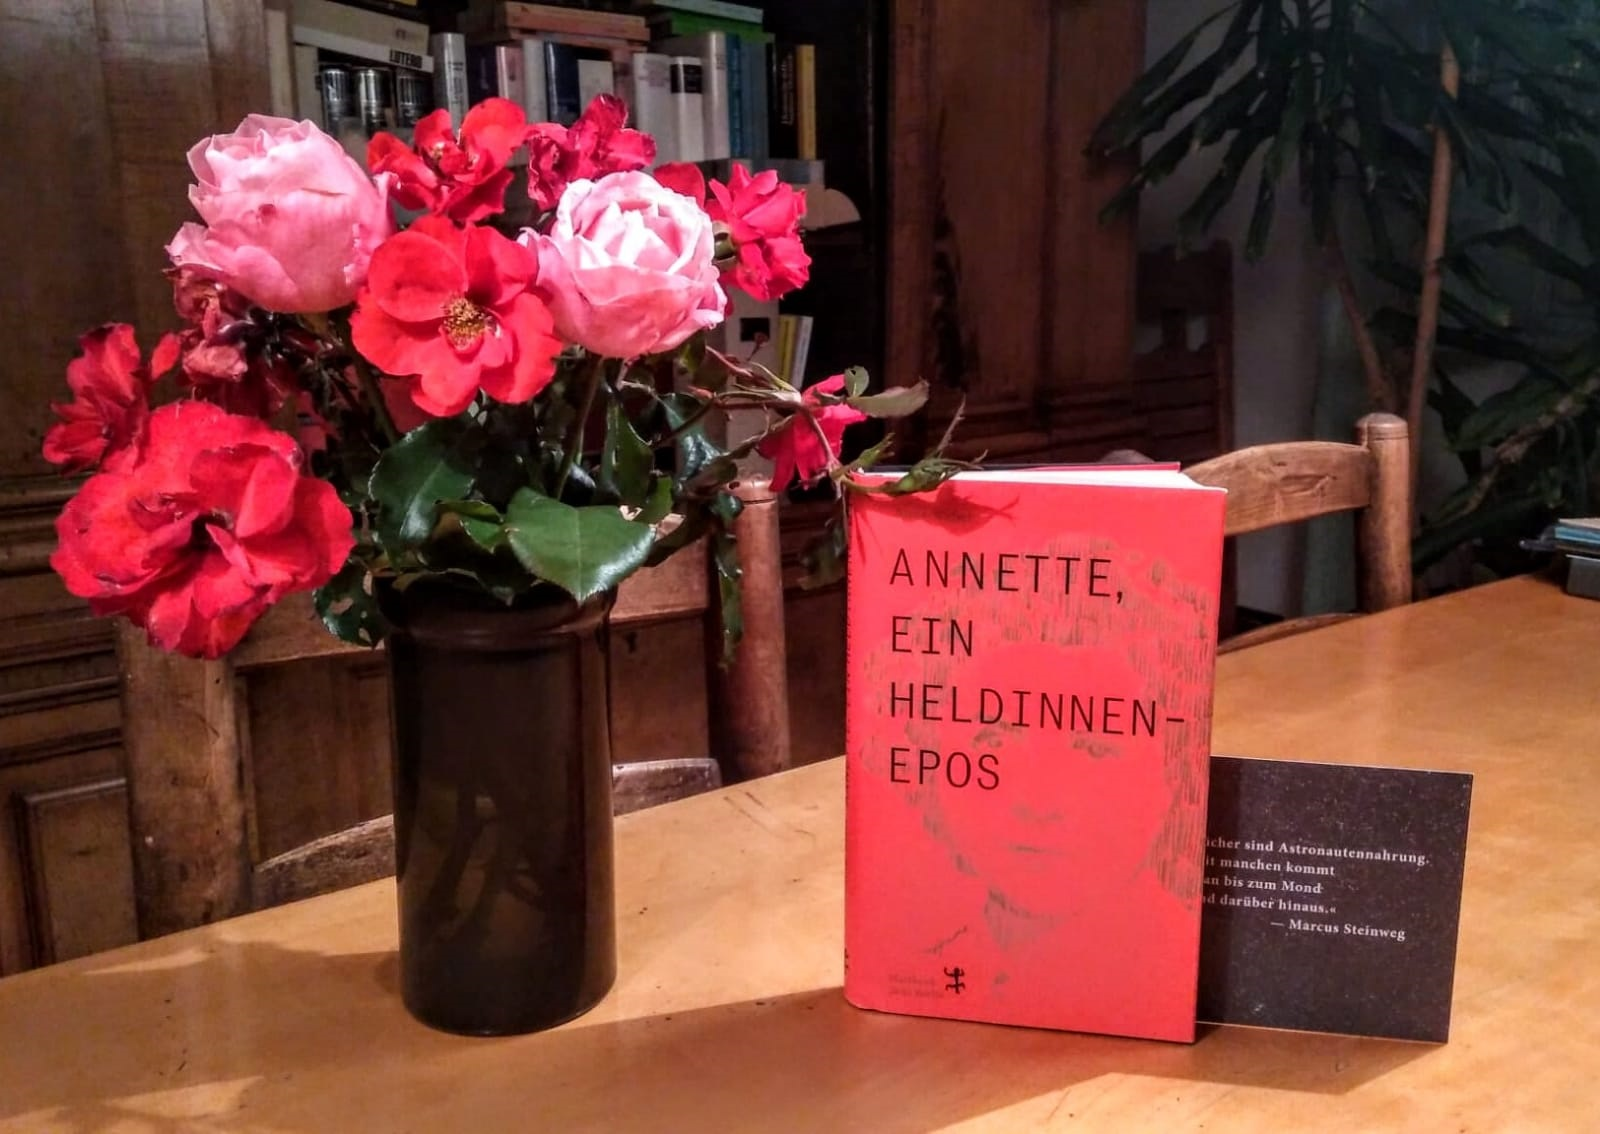 The German Book Prize 2020 goes to Anne Weber